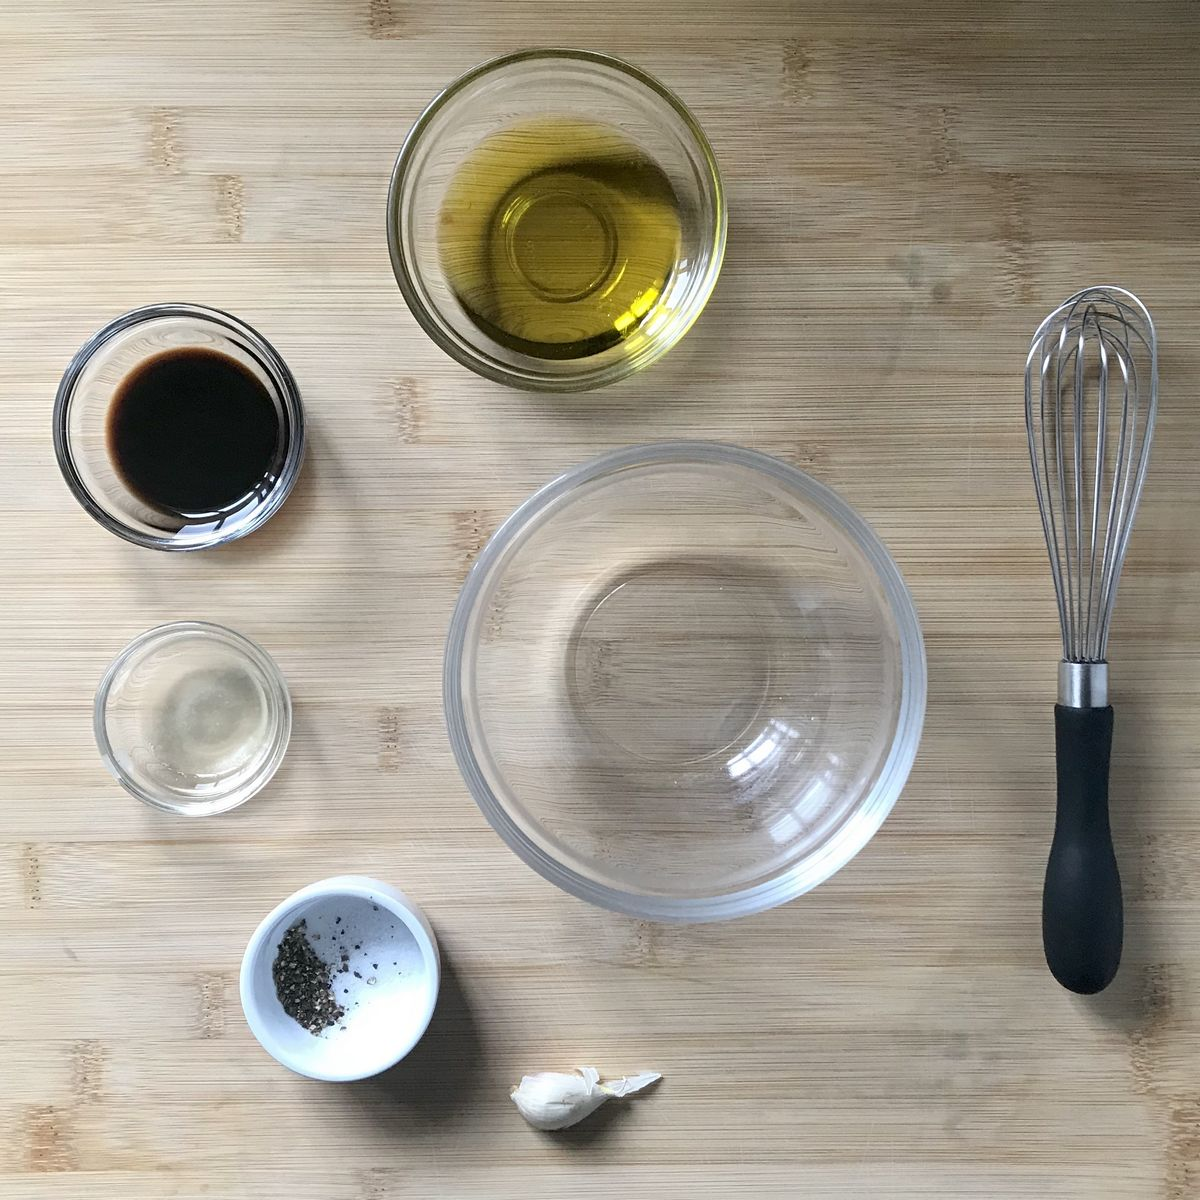 The ingredients to make the vinaigrette in bowls.